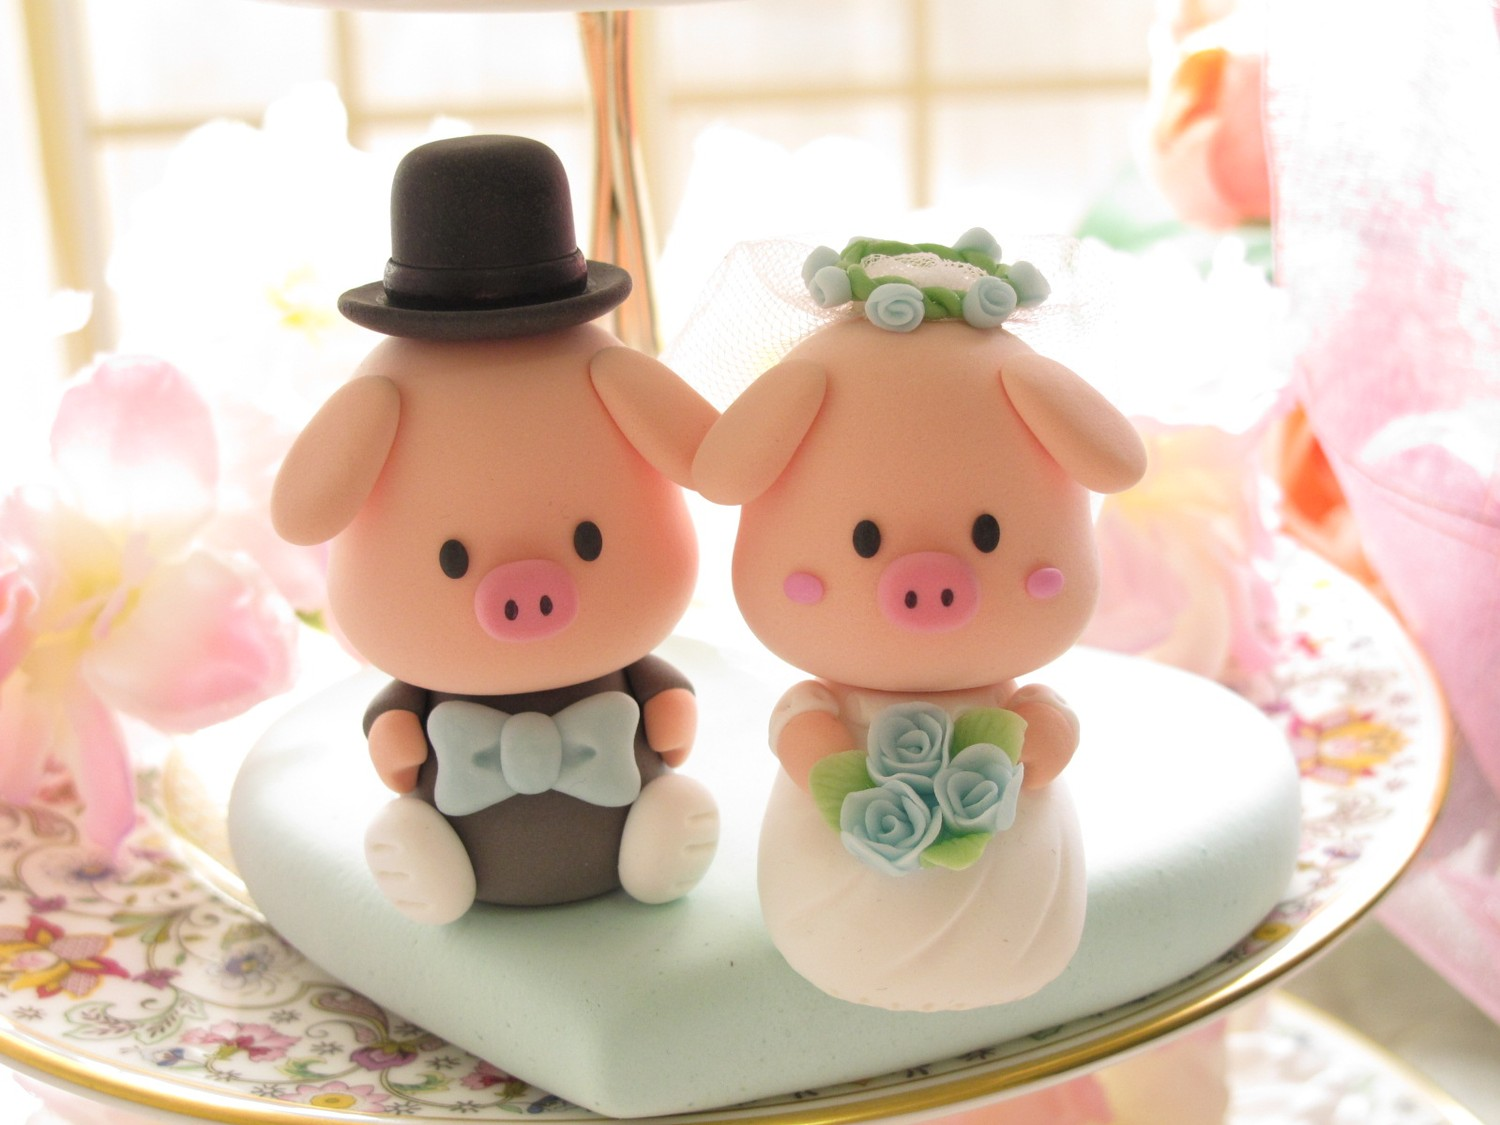 Cute Wedding Cake Toppers Handmade Wedding Finds From Etsy